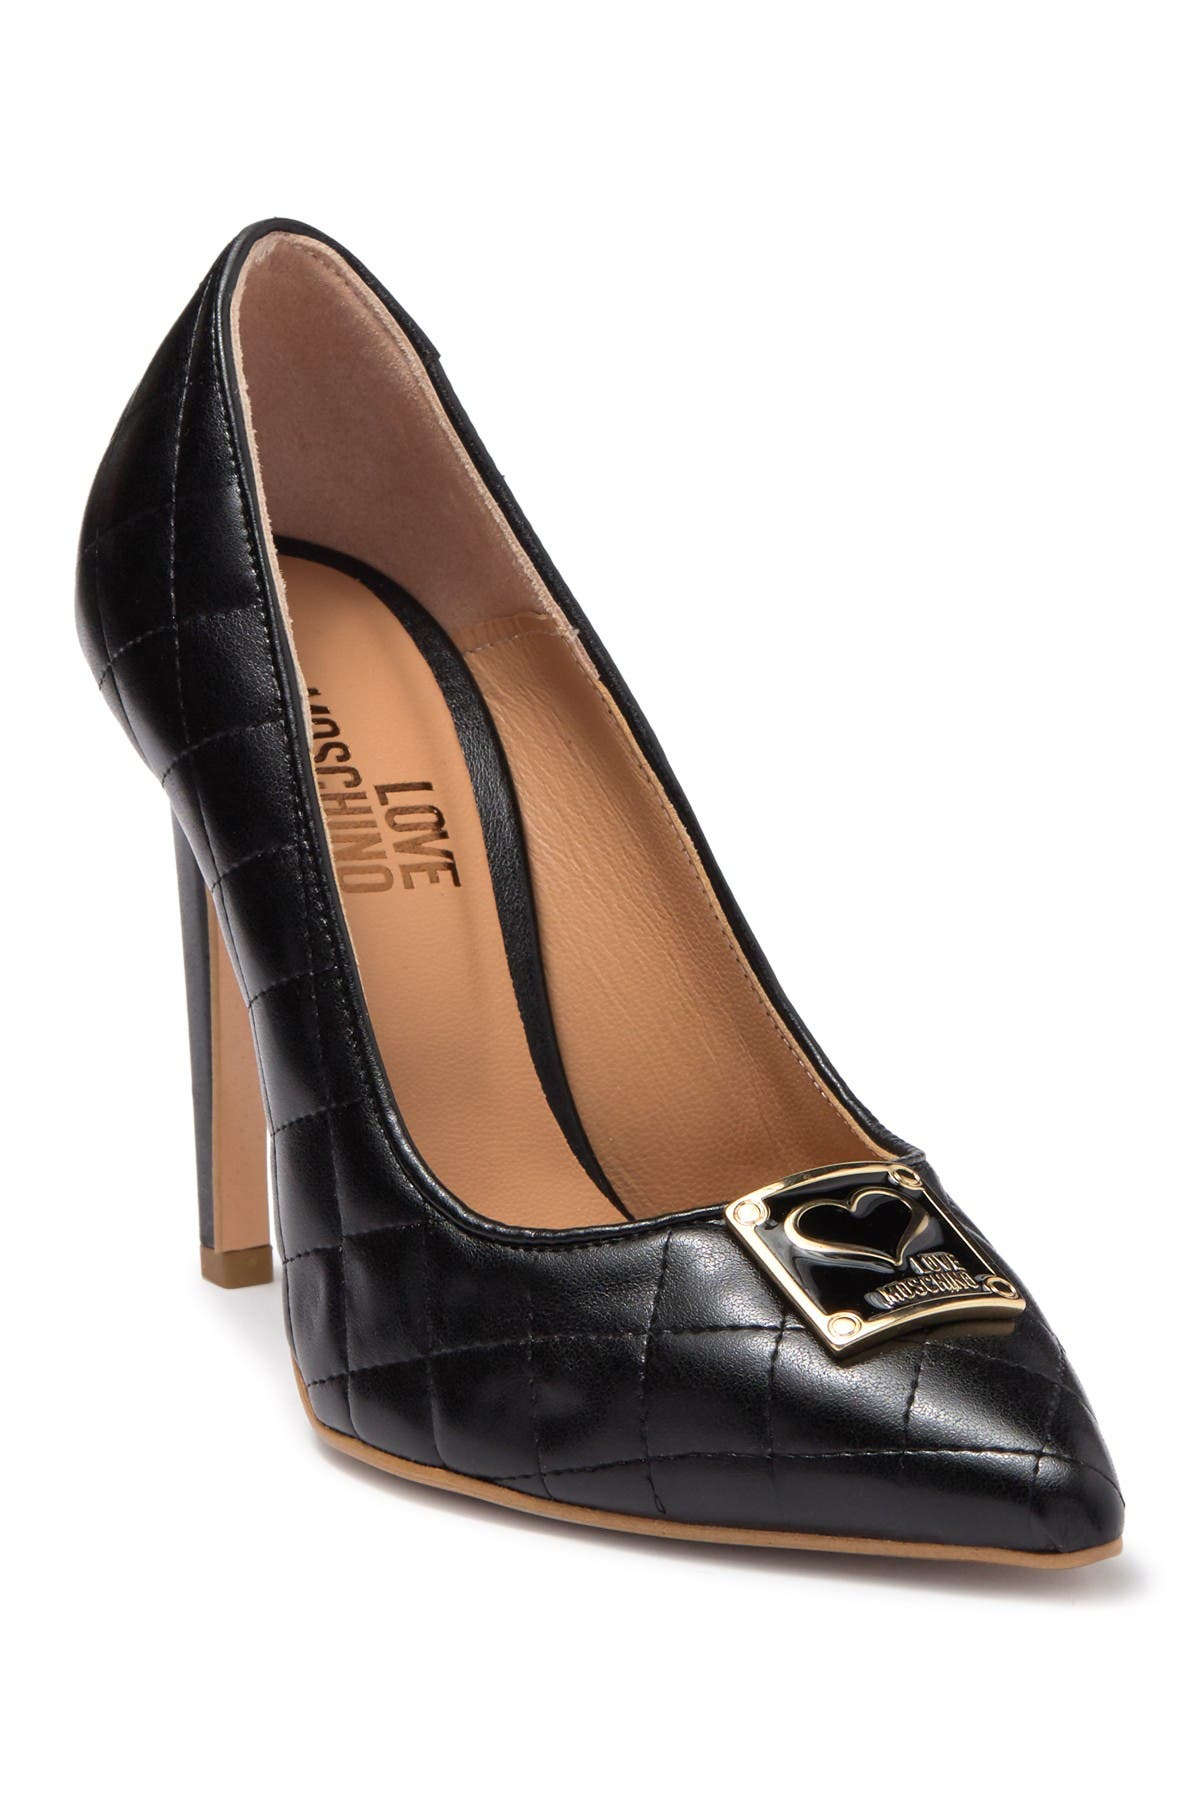 Image of LOVE Moschino Quilted Stiletto Pump